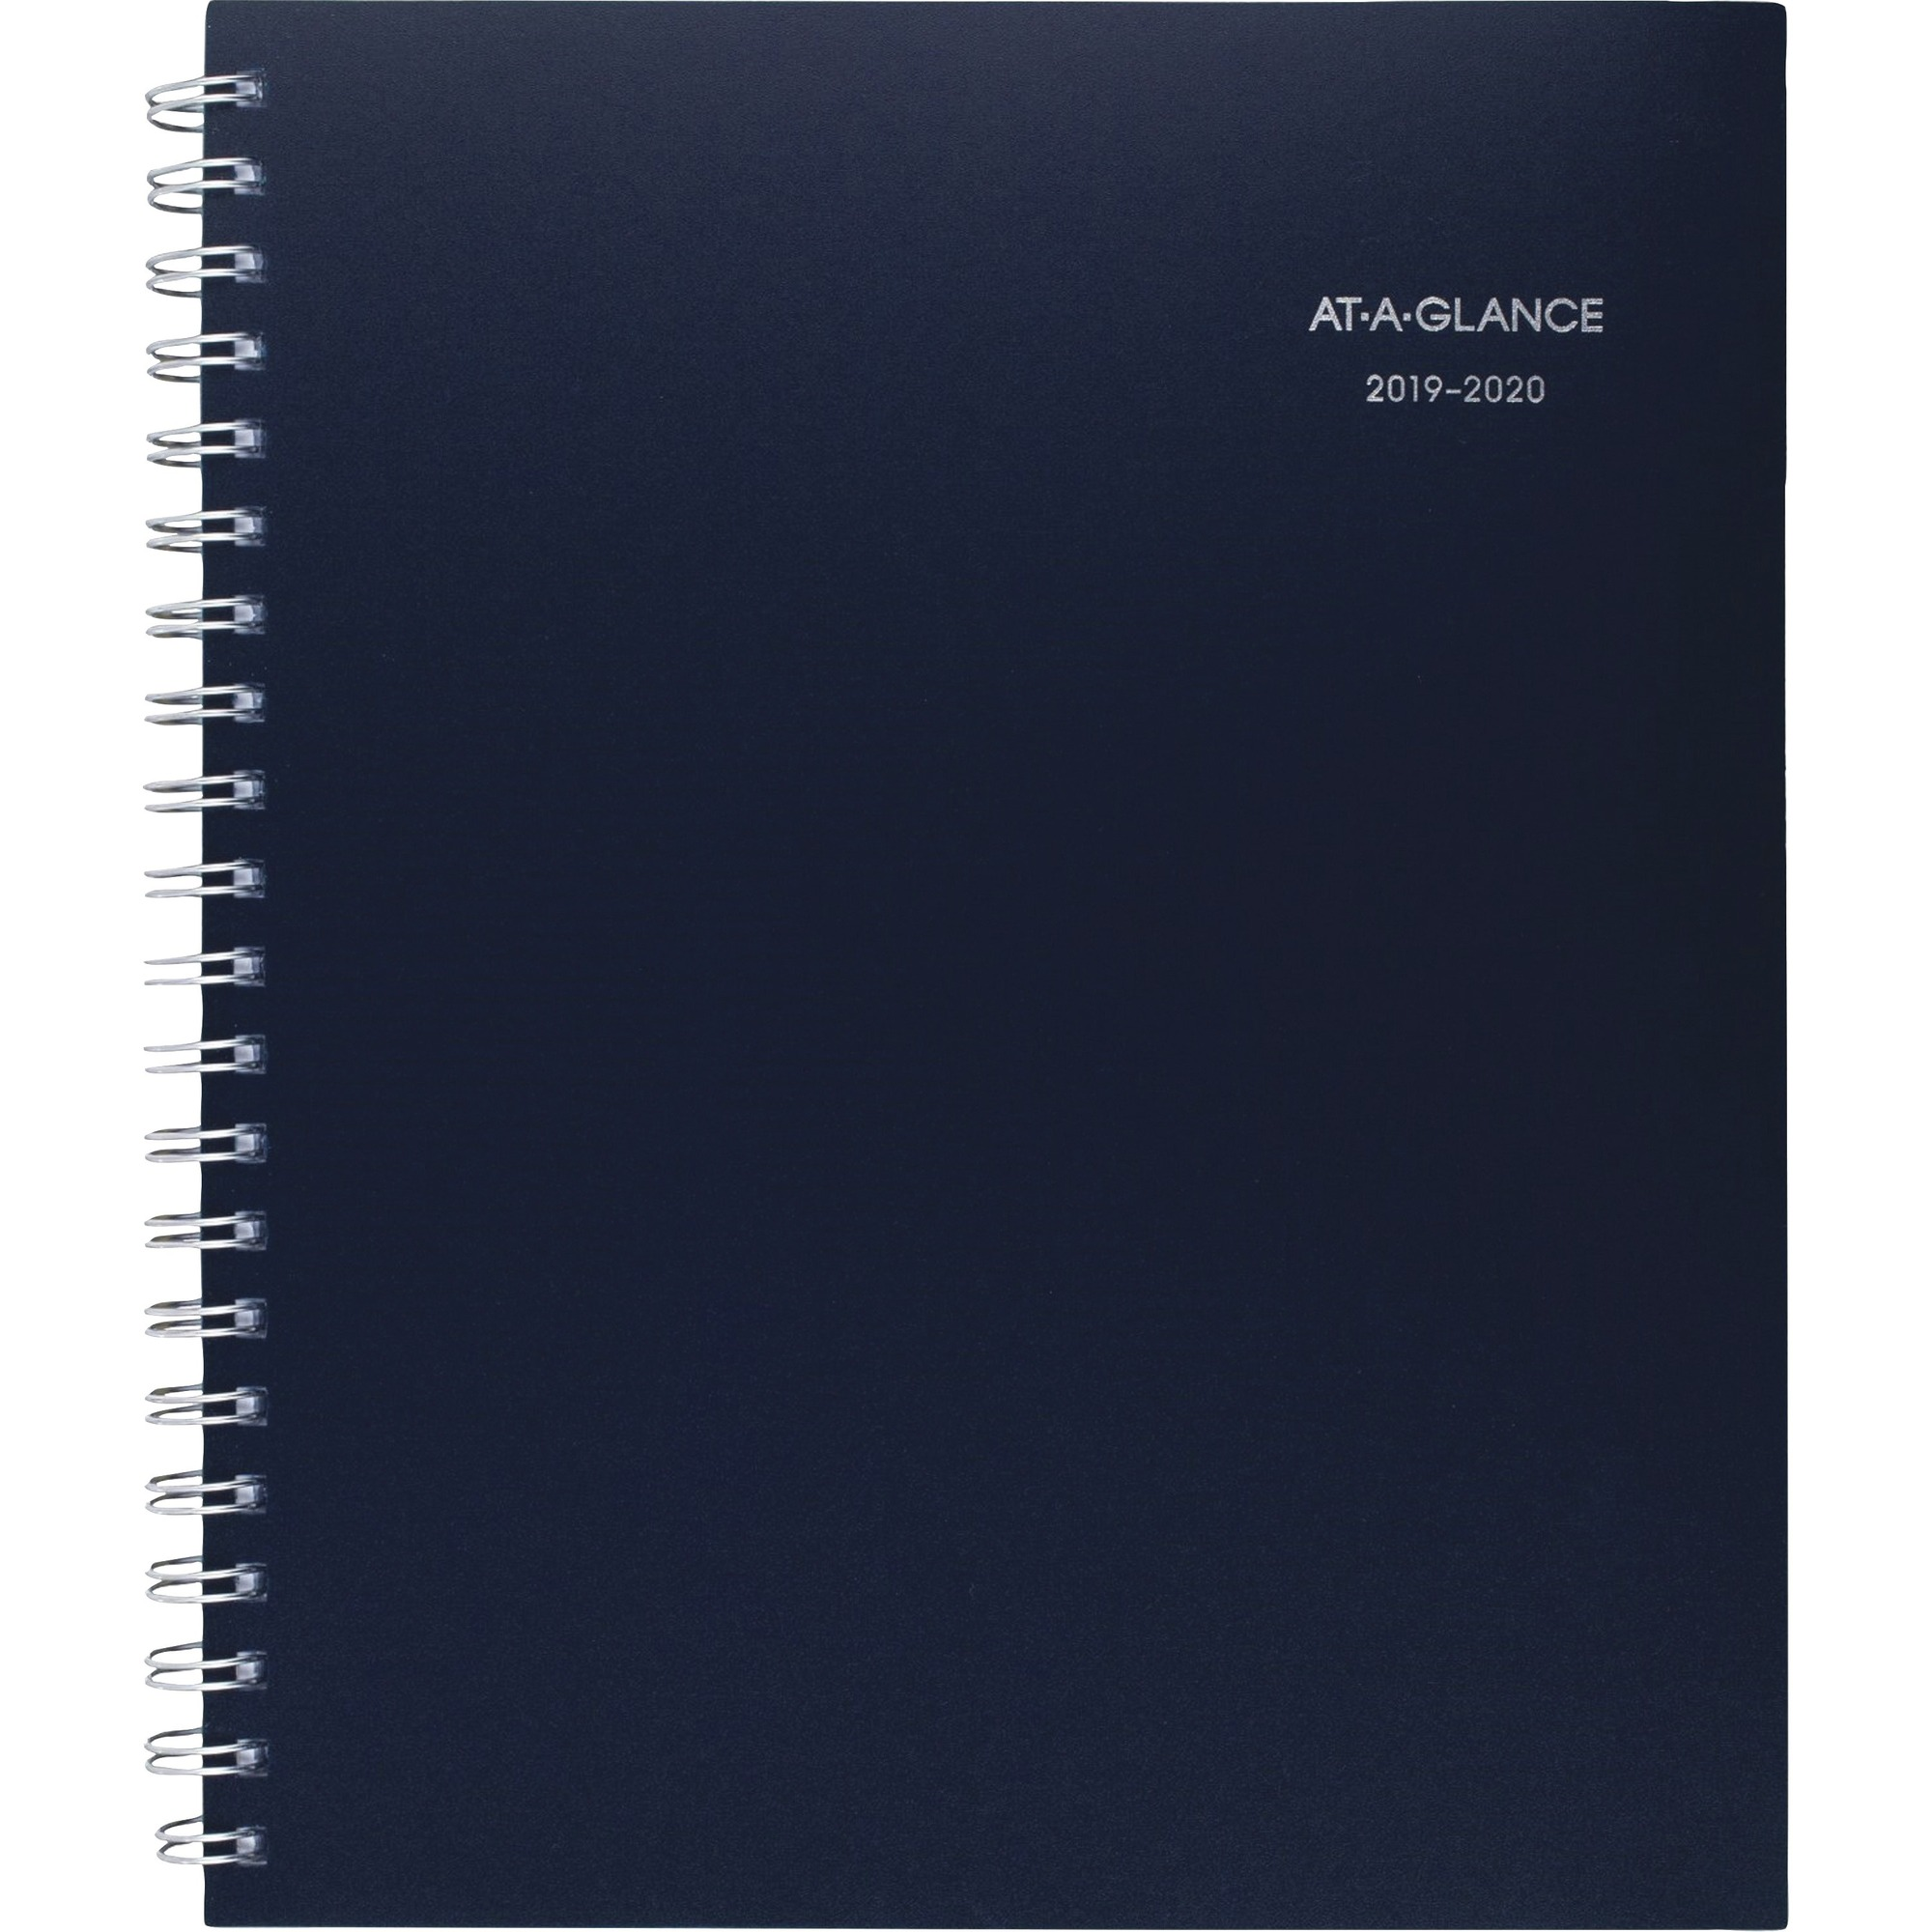 At-A-Glance Teacher Weekly/Monthly Large Planner - Academic - Yes - Weekly, Monthly - 1 Year - July till June - 1 Week, 1 Month Double Page Layout - Wire Bound - Navy Blue, Navy, Gold - Notepad, Bleed Resistant Paper, Unruled Daily Block, Notes Area, Tabb